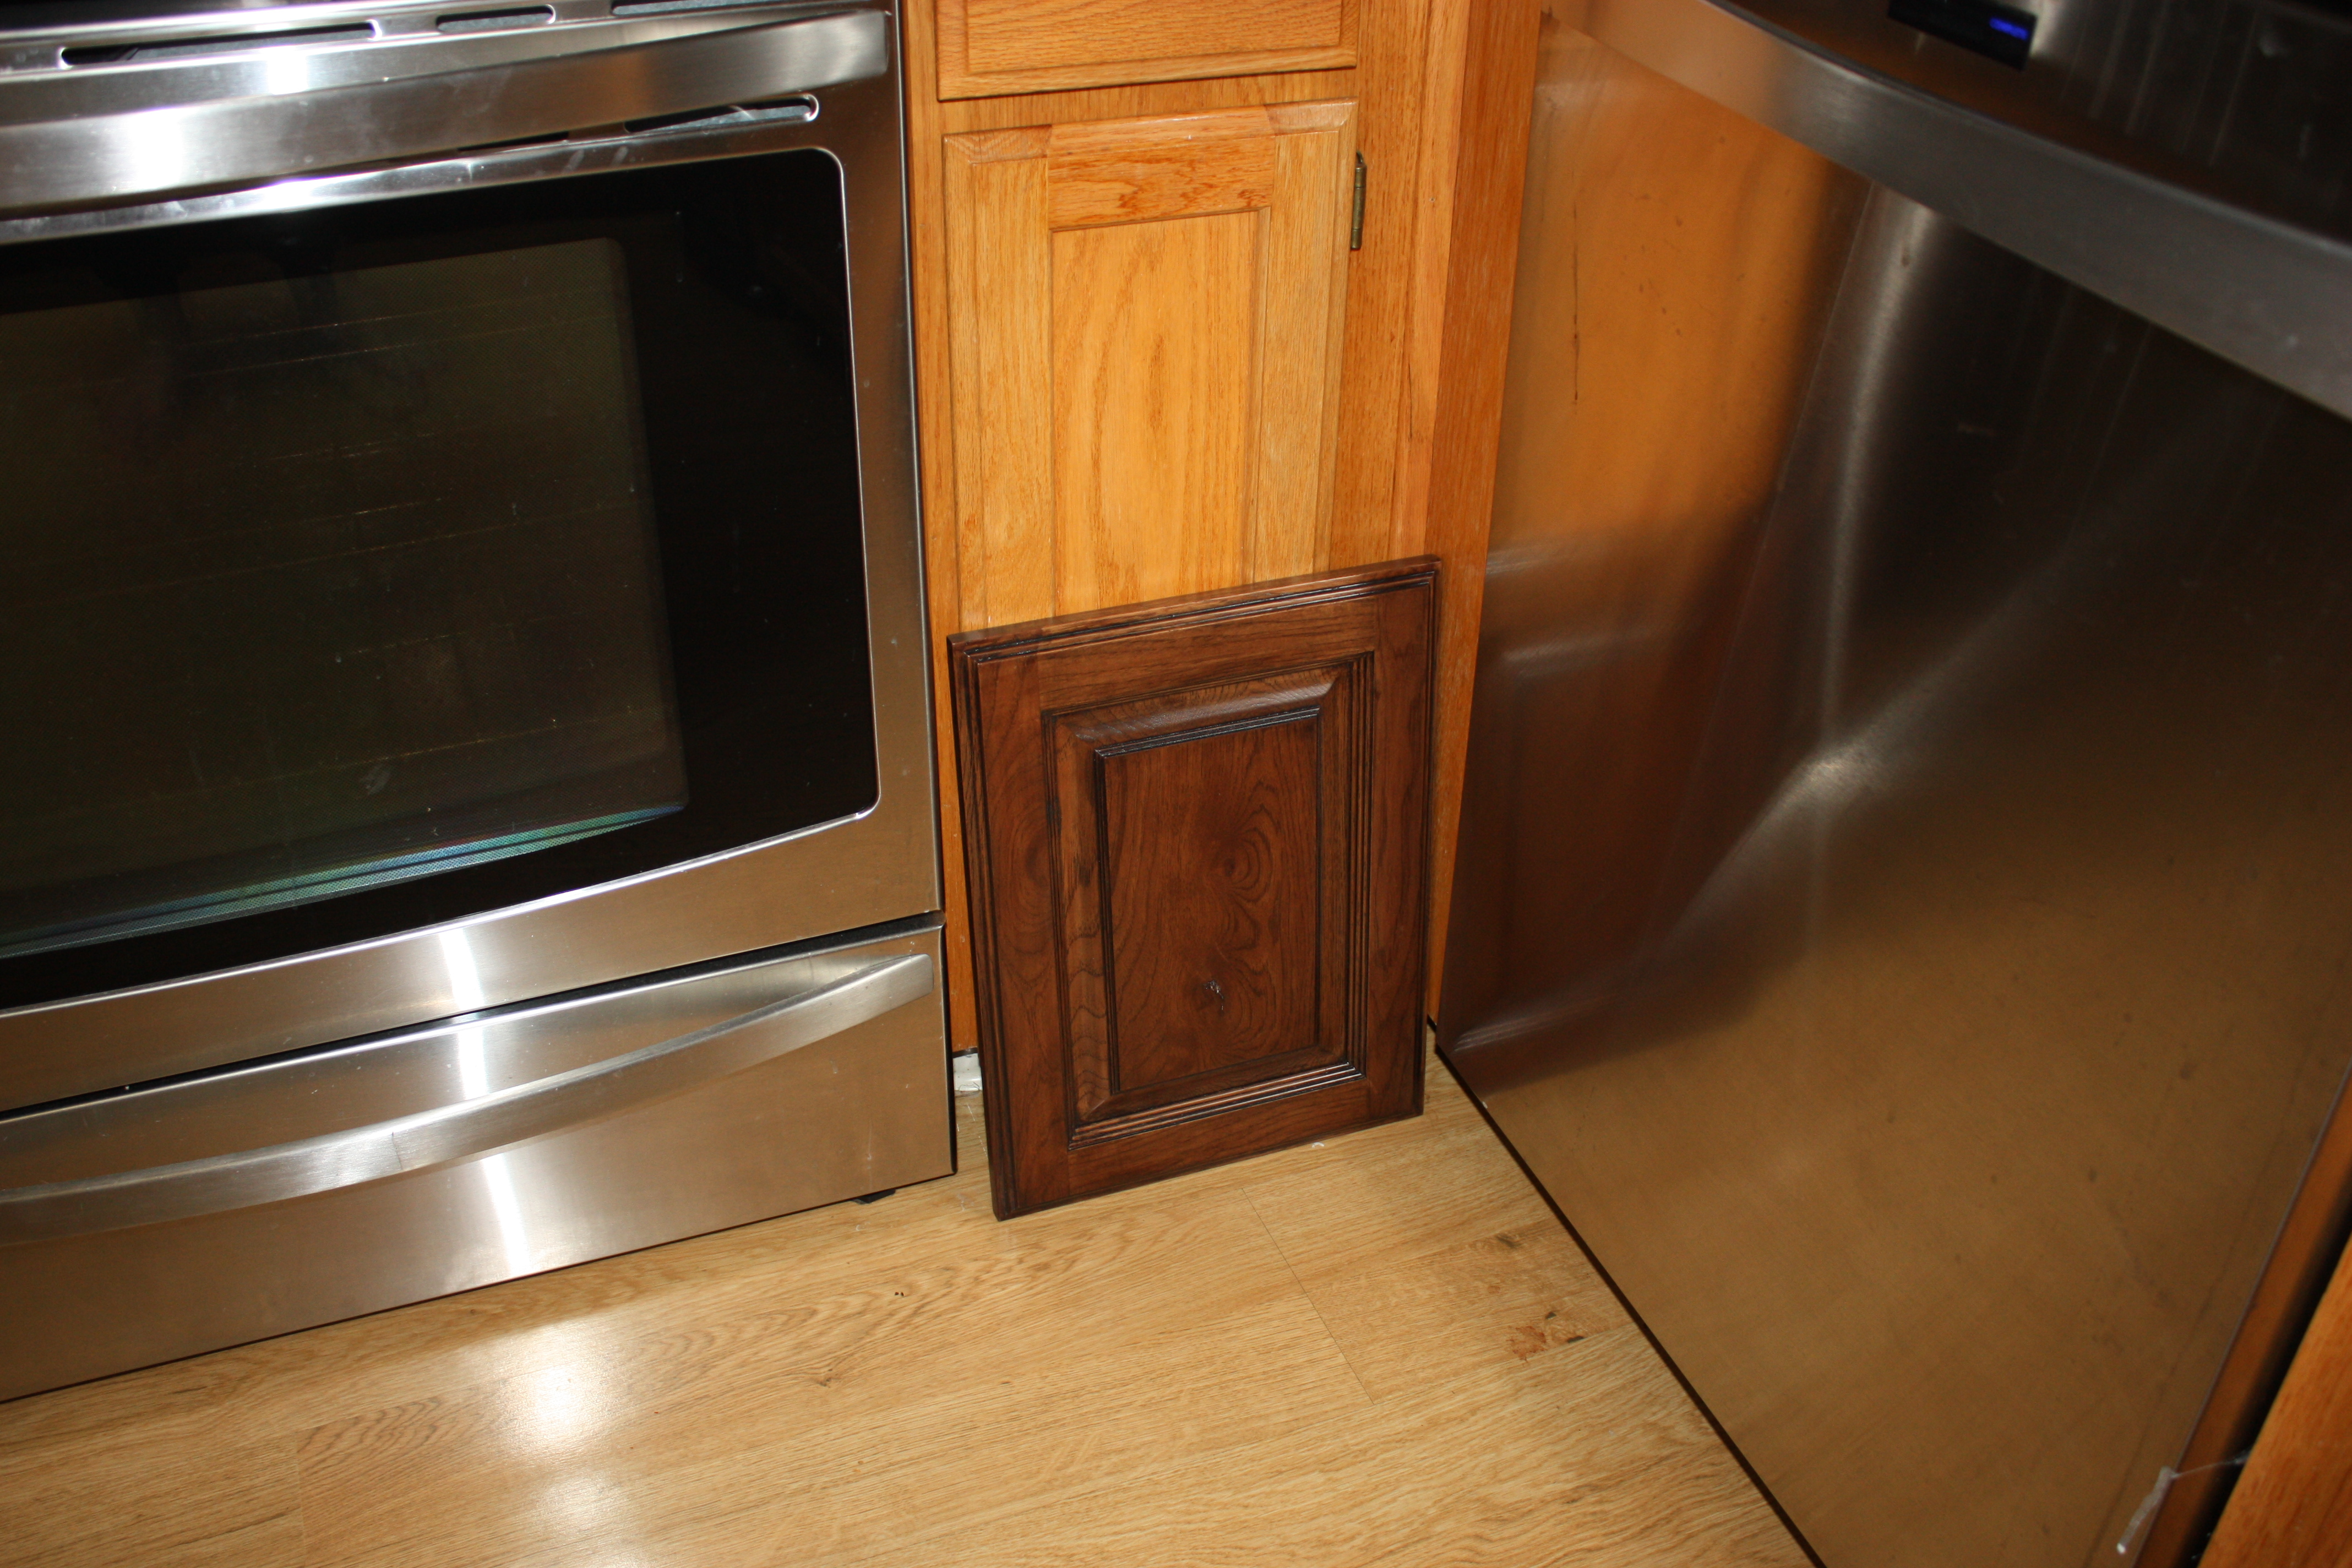 Refinishing Kitchen Cabinets With Minwax Polyshades